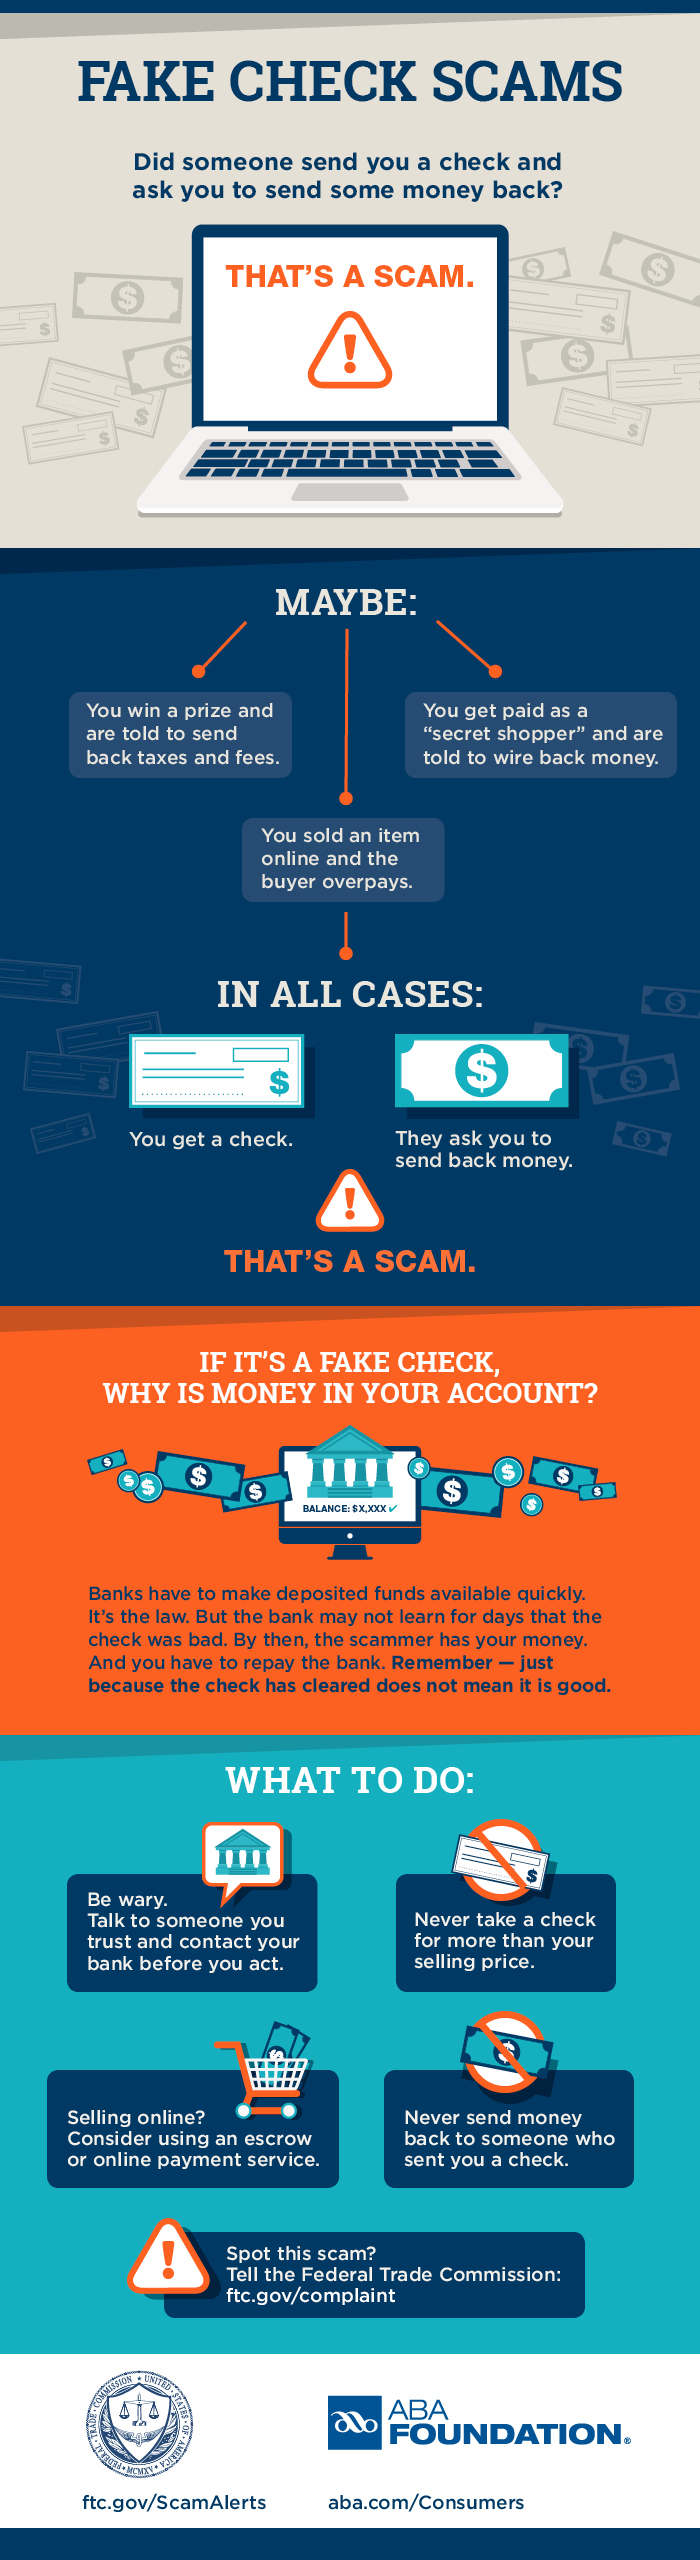 Infographic about Fake Check Scams - graphic explains a variety of ways people are getting scammed.